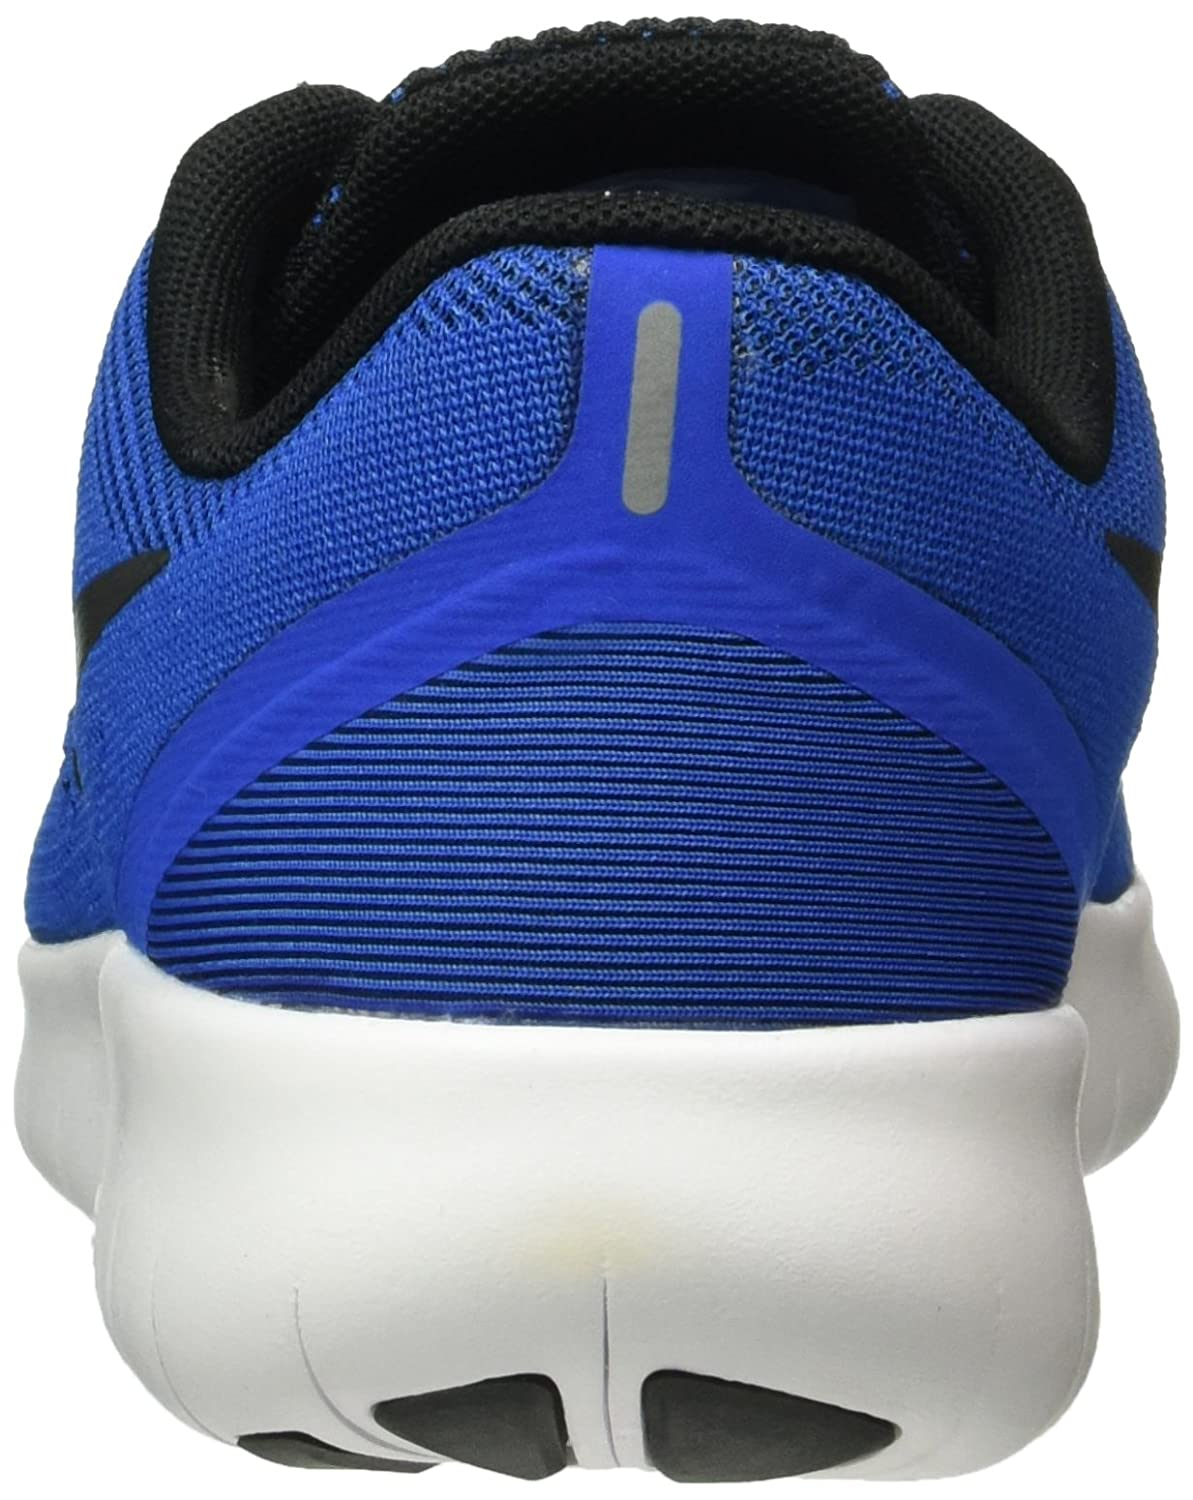 NIKE ' Free Rn (Big) B0189HEPME Royal/Black-white 7 Big Kid M|Game Royal/Black-white B0189HEPME 5ba191